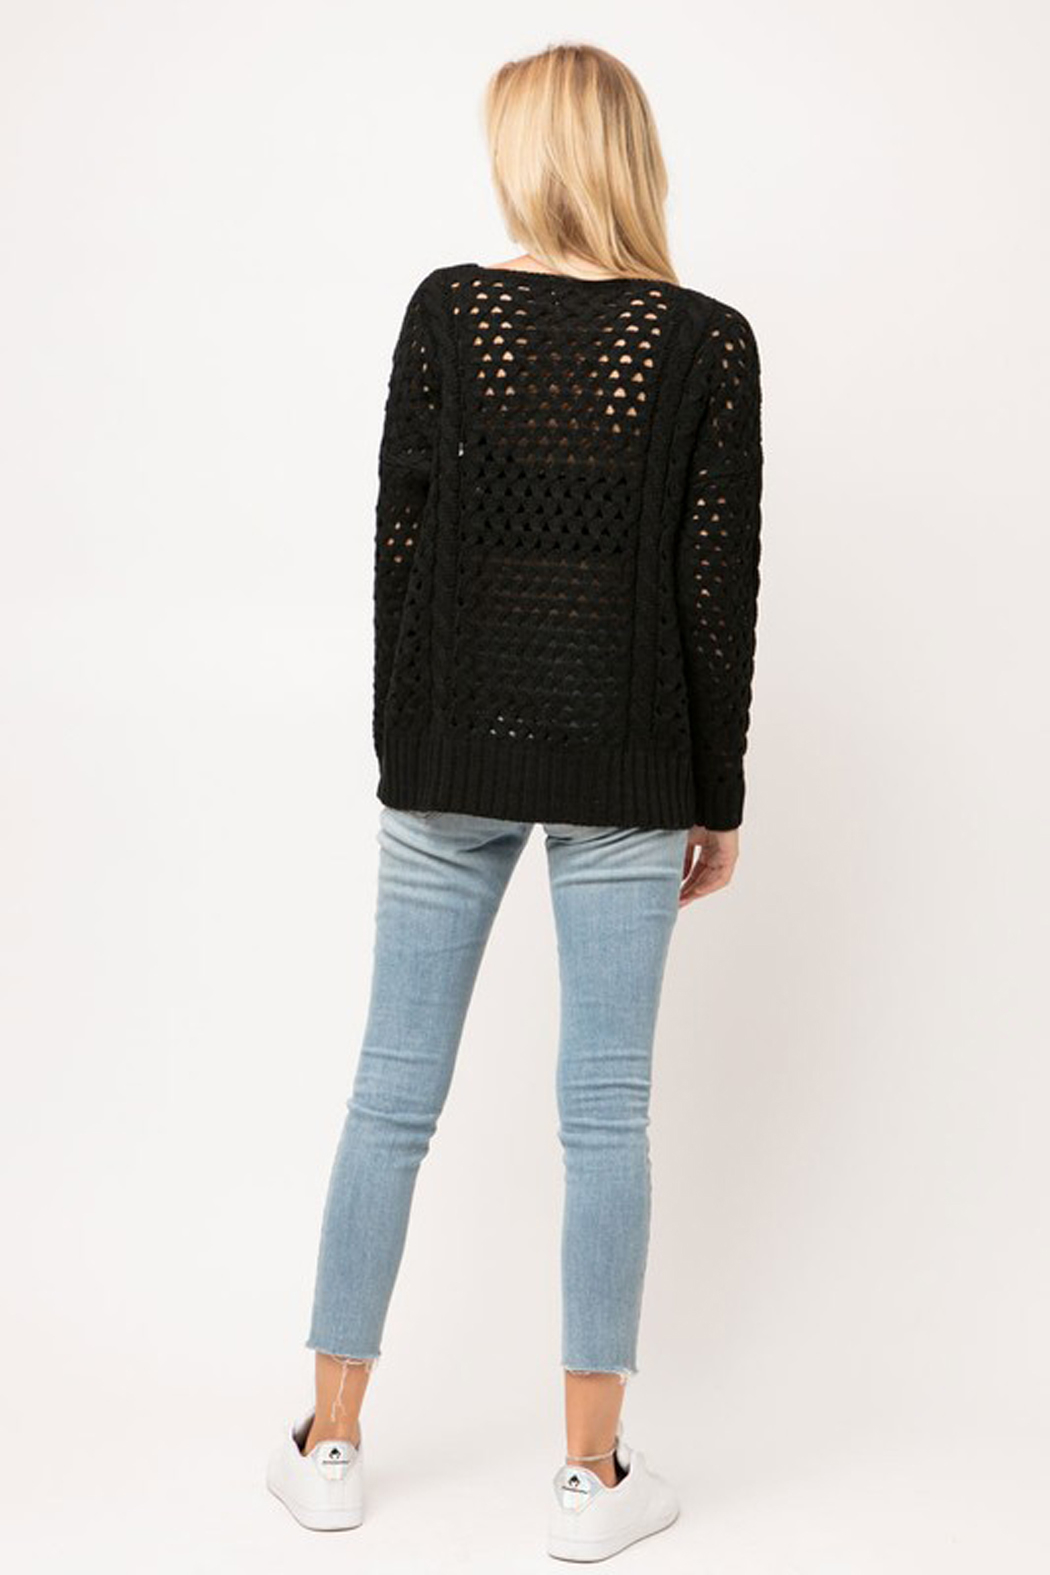 Cozy Casual Chunky Knit Eyelet Black Sweater - Back Cropped Image